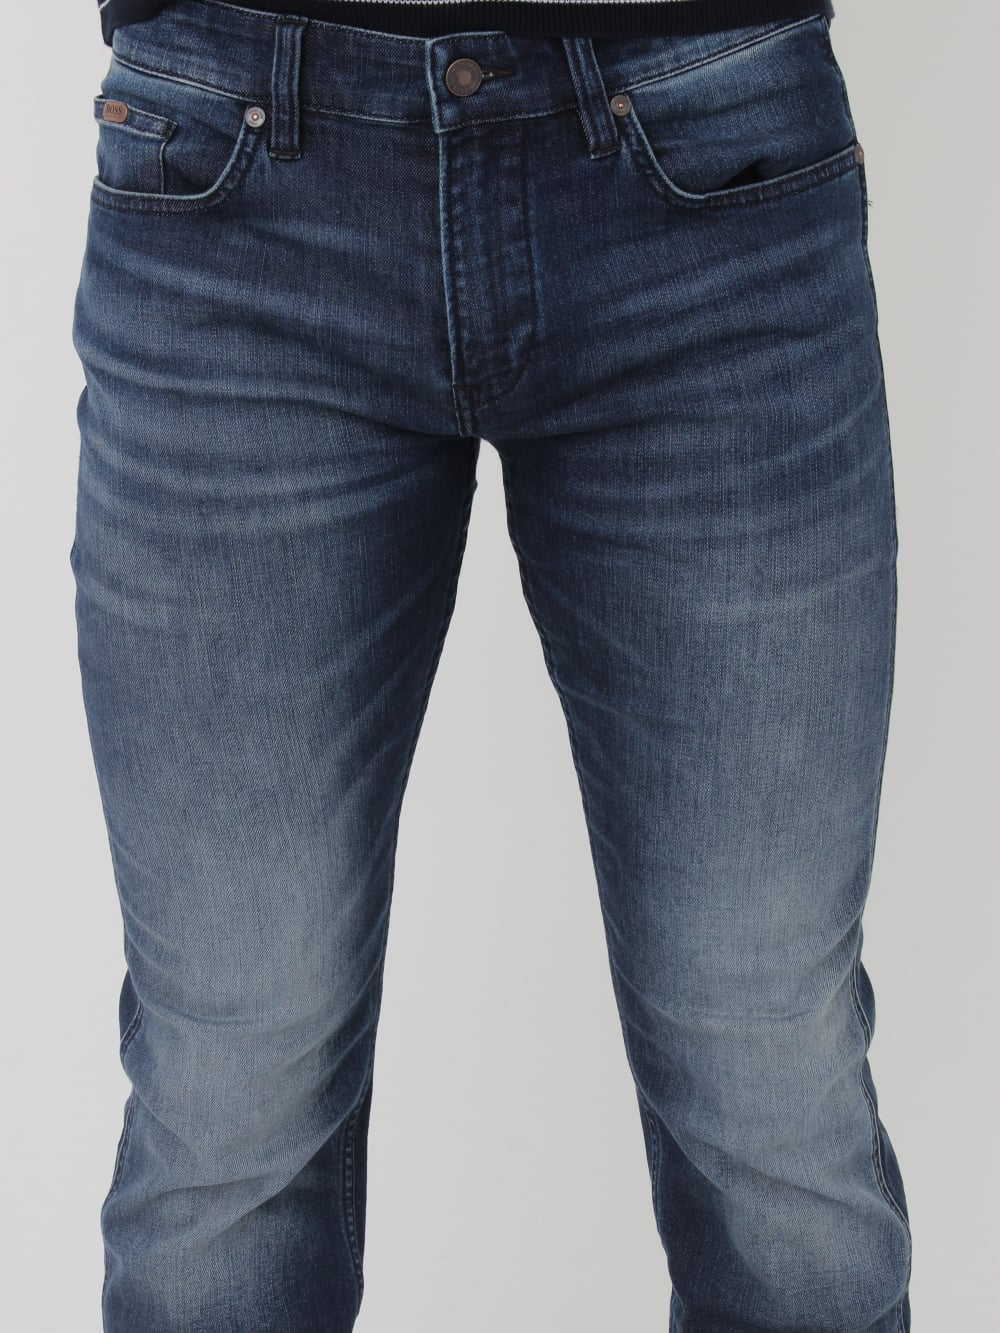 e8d2a4a198782 HUGO BOSS BOSS Green Delaware 1 Slim Fit Jeans in Navy - Northern ...